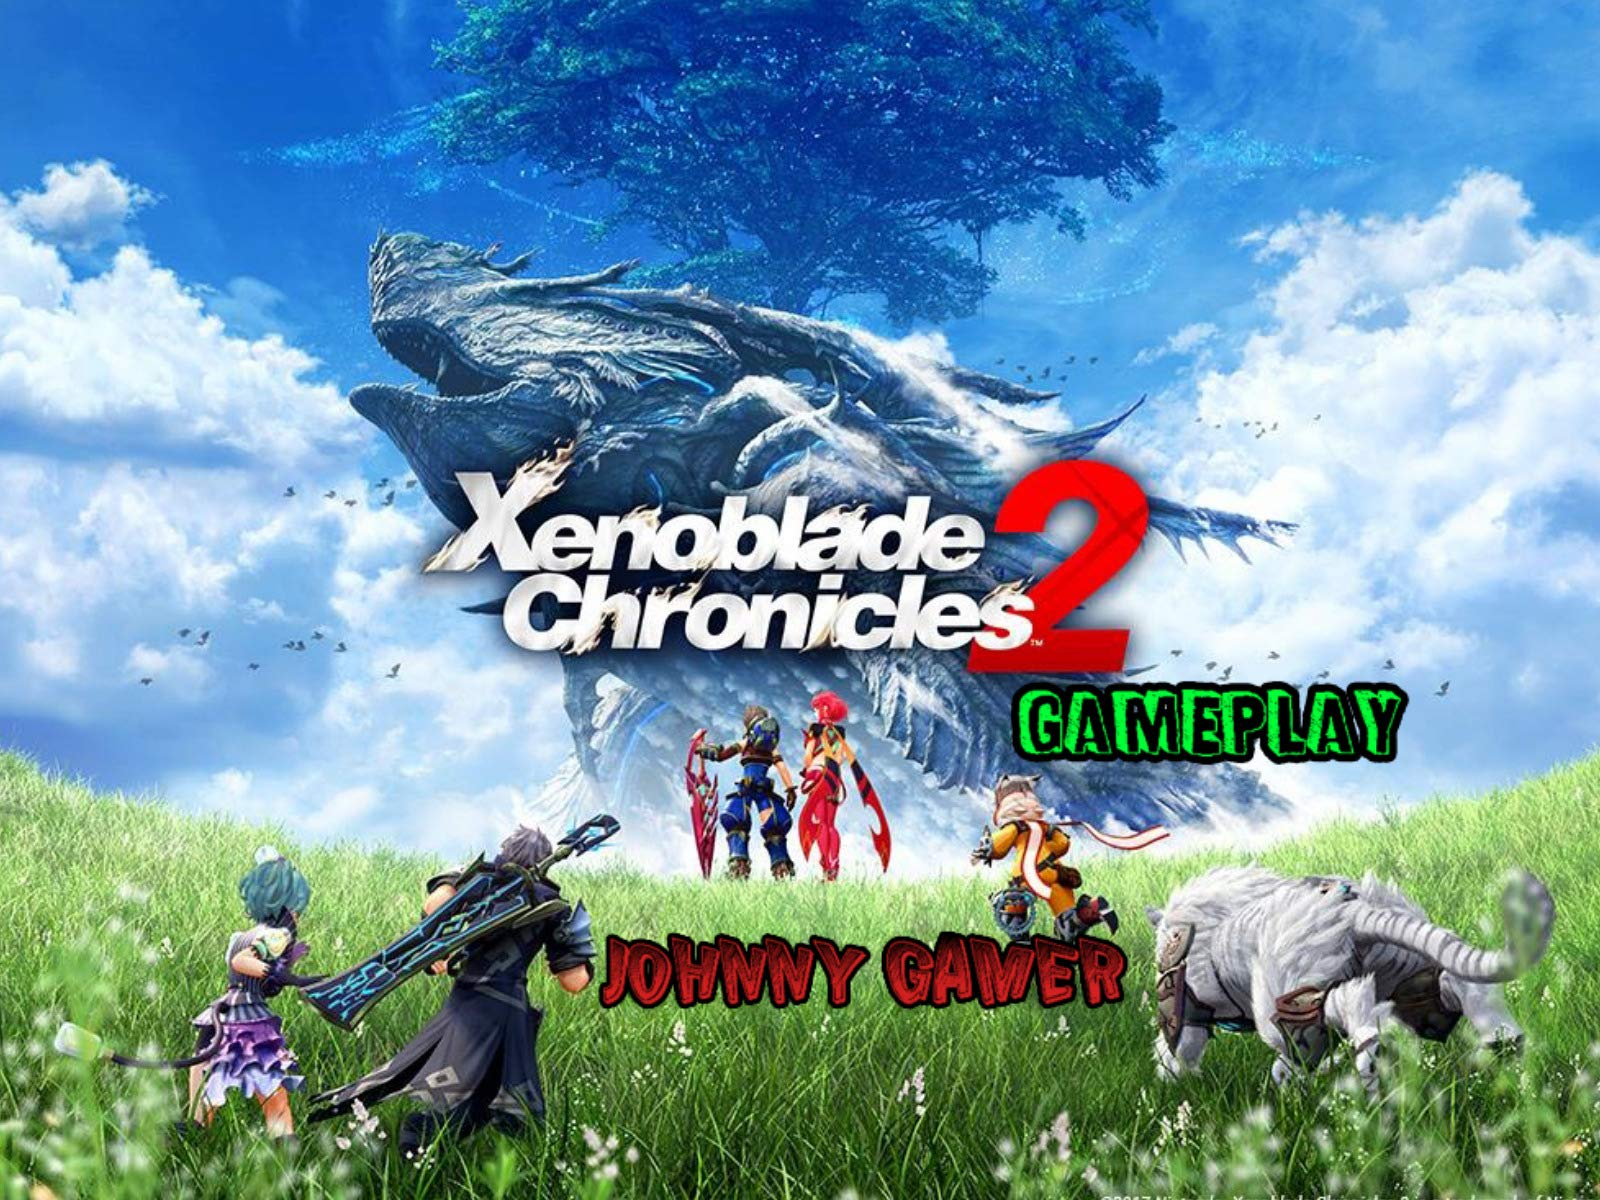 Watch Clip Xenoblade Chronicles 2 Gameplay Johnny Gamer Prime